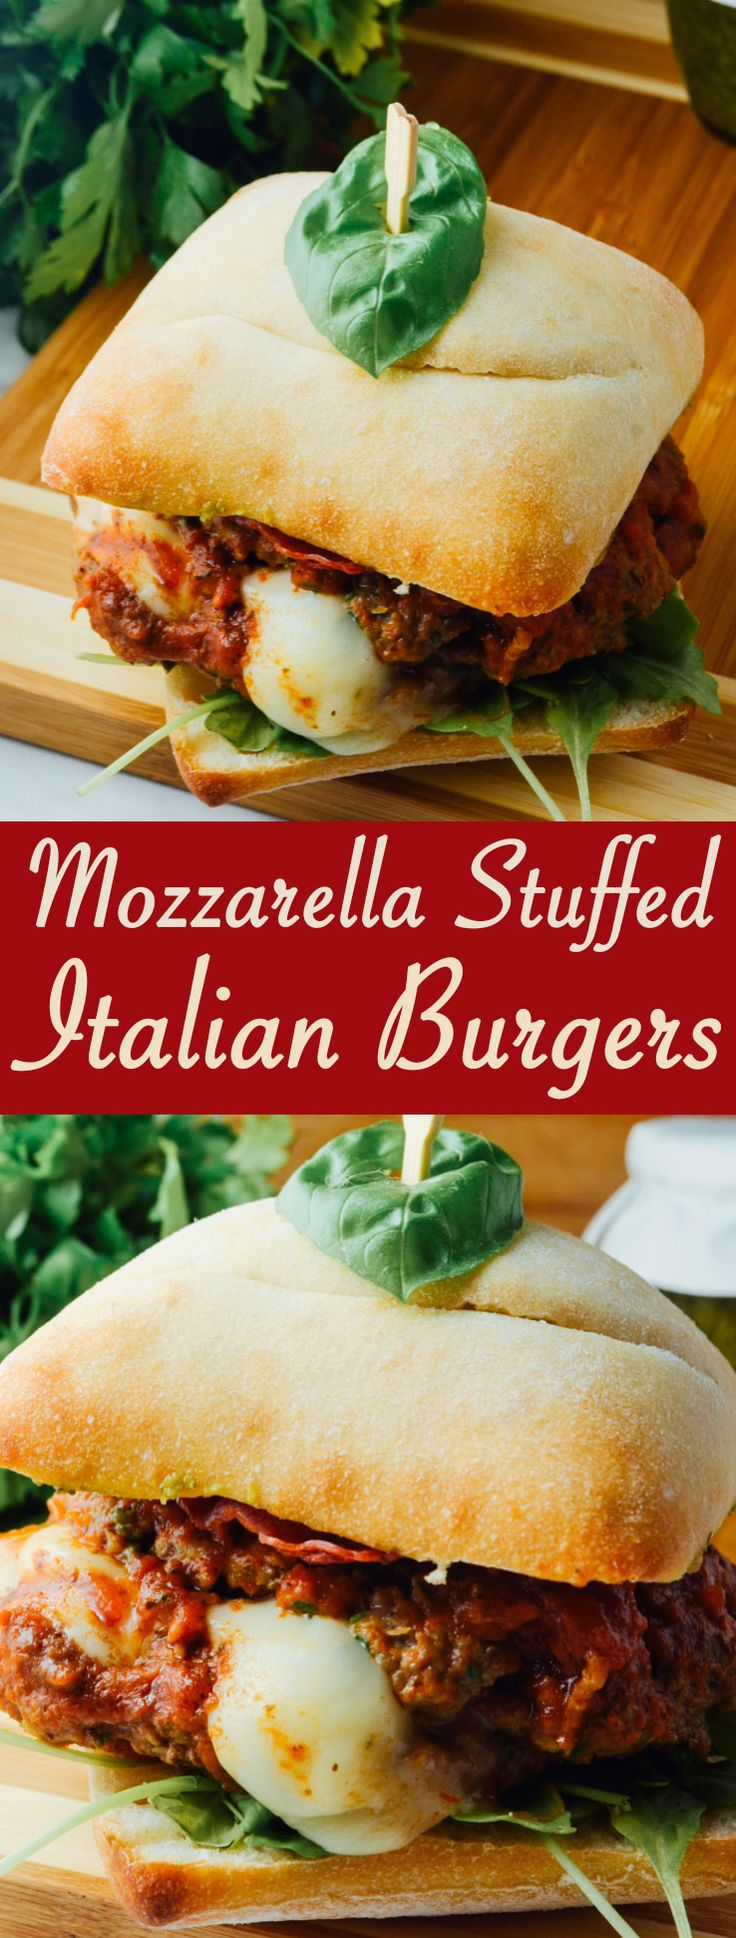 These Mozzarella Stuffed Italian Burgers are a flavorful and easy weeknight meal!